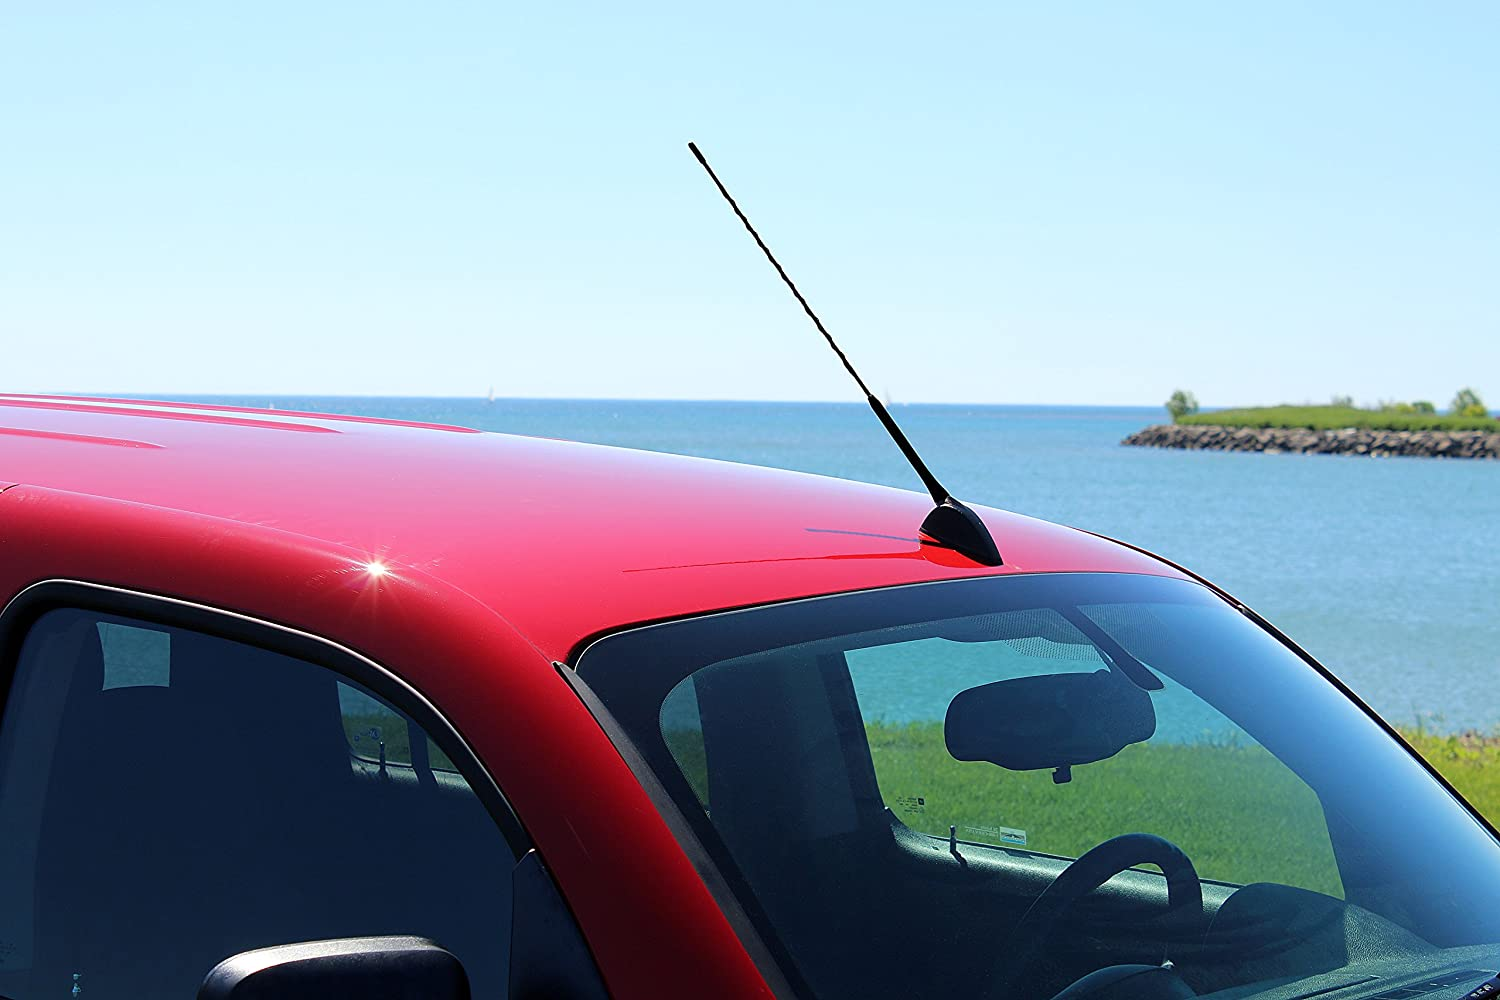 2014-2017 Made in USA 4 Black Aluminum Antenna is Compatible with BMW M235I Convertible AntennaMastsRus 4350472802